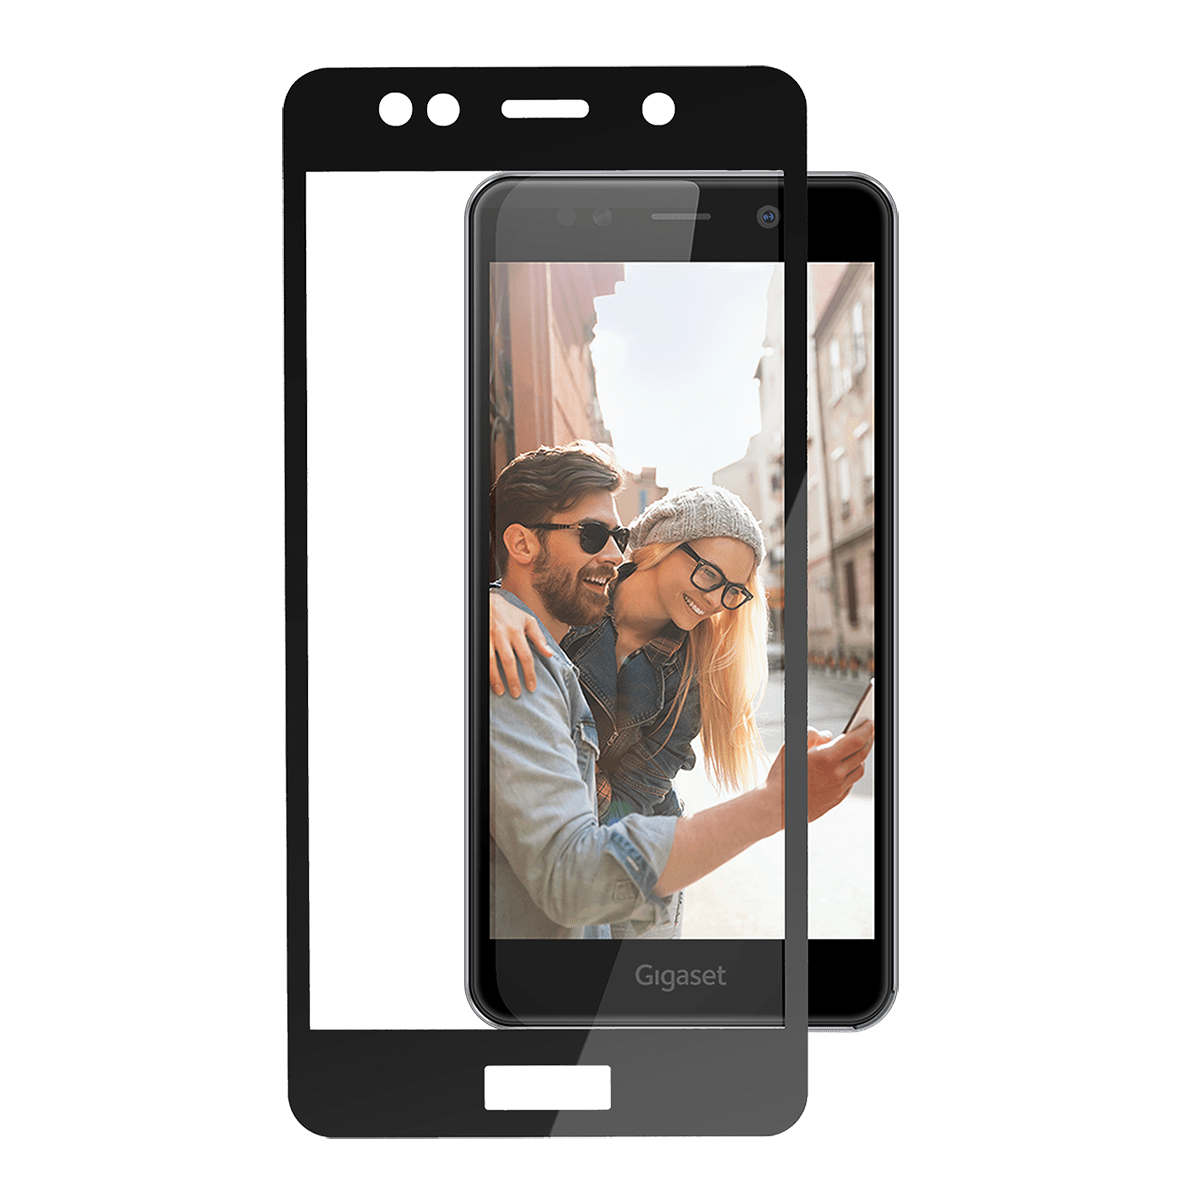 Gigaset Full Display HD Glass Protector (GS180)